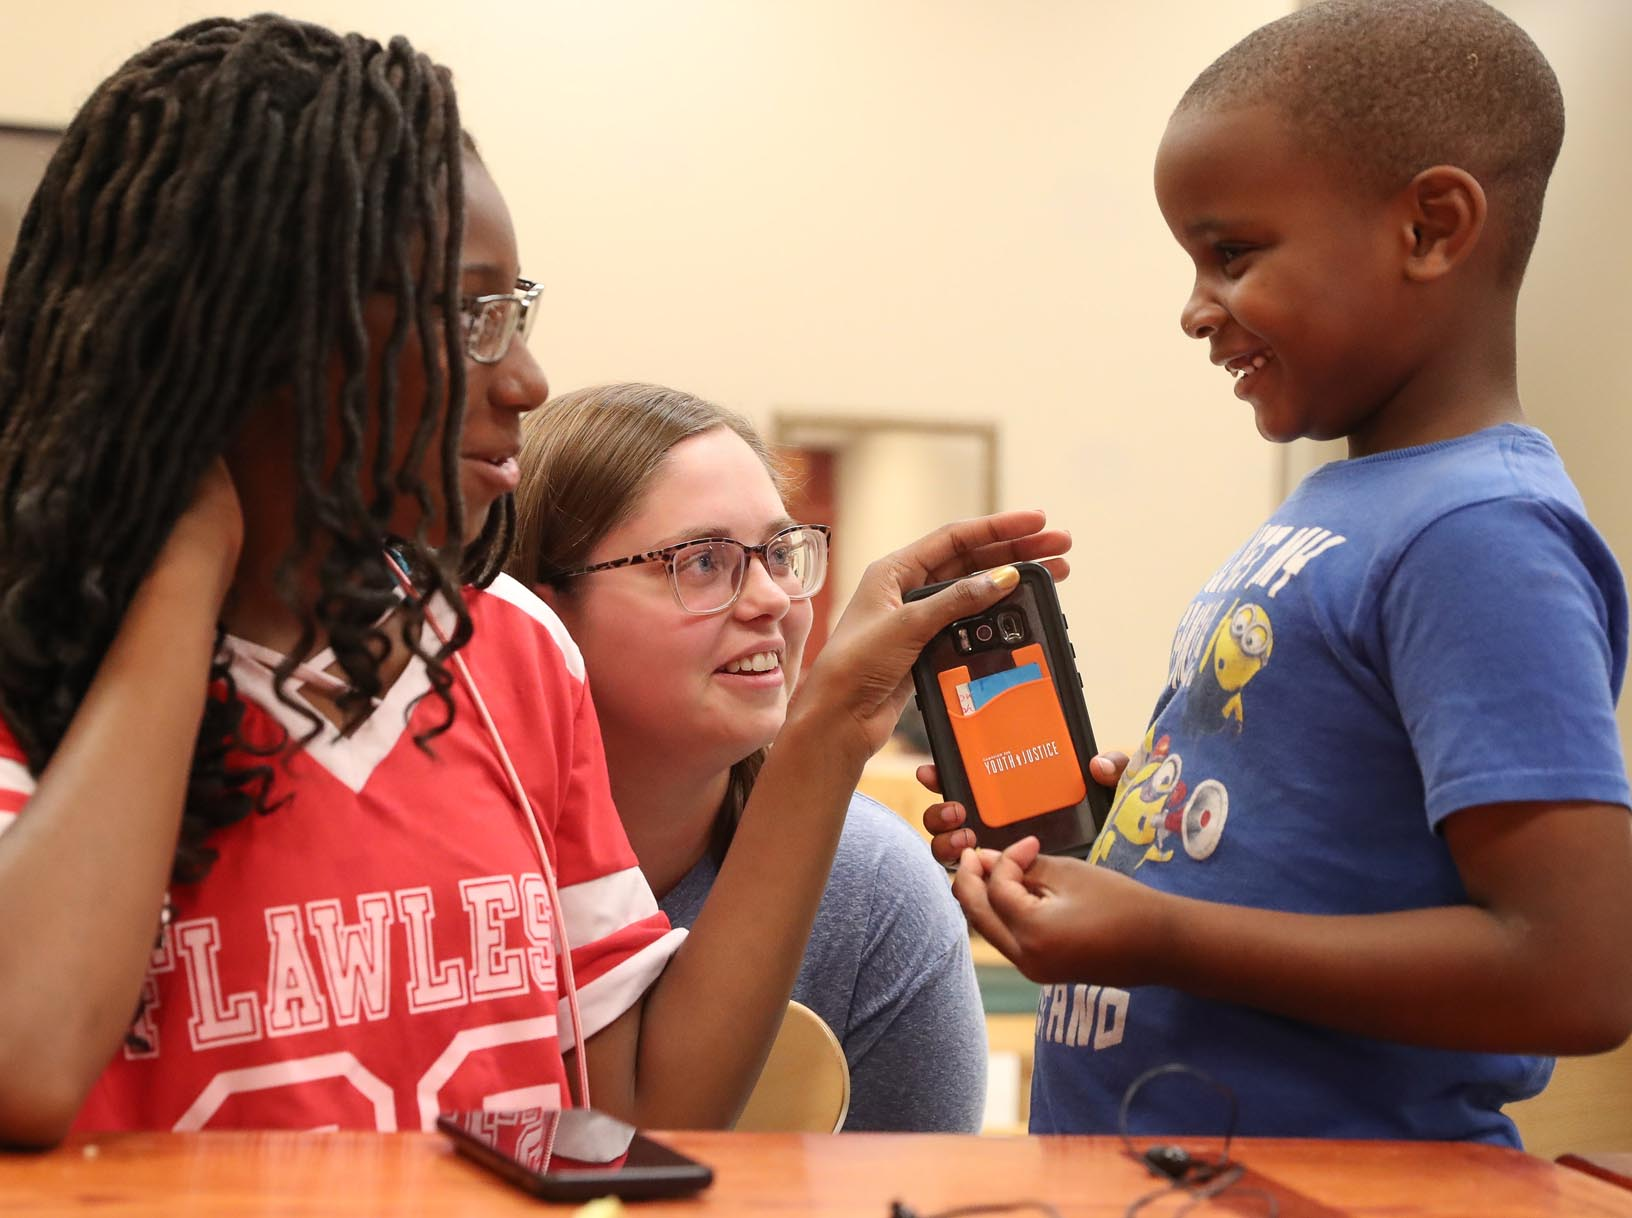 UNK senior Alyssa Donahey of Palmer, center, interacts with Octavia Westbrooks, left, and Braylen Fraklen on Friday at the Crossroads Center homeless shelter in Kearney. Social work majors from UNK spent the day learning about a variety of resources available in the community. (Photo by Corbey R. Dorsey, UNK Communications)